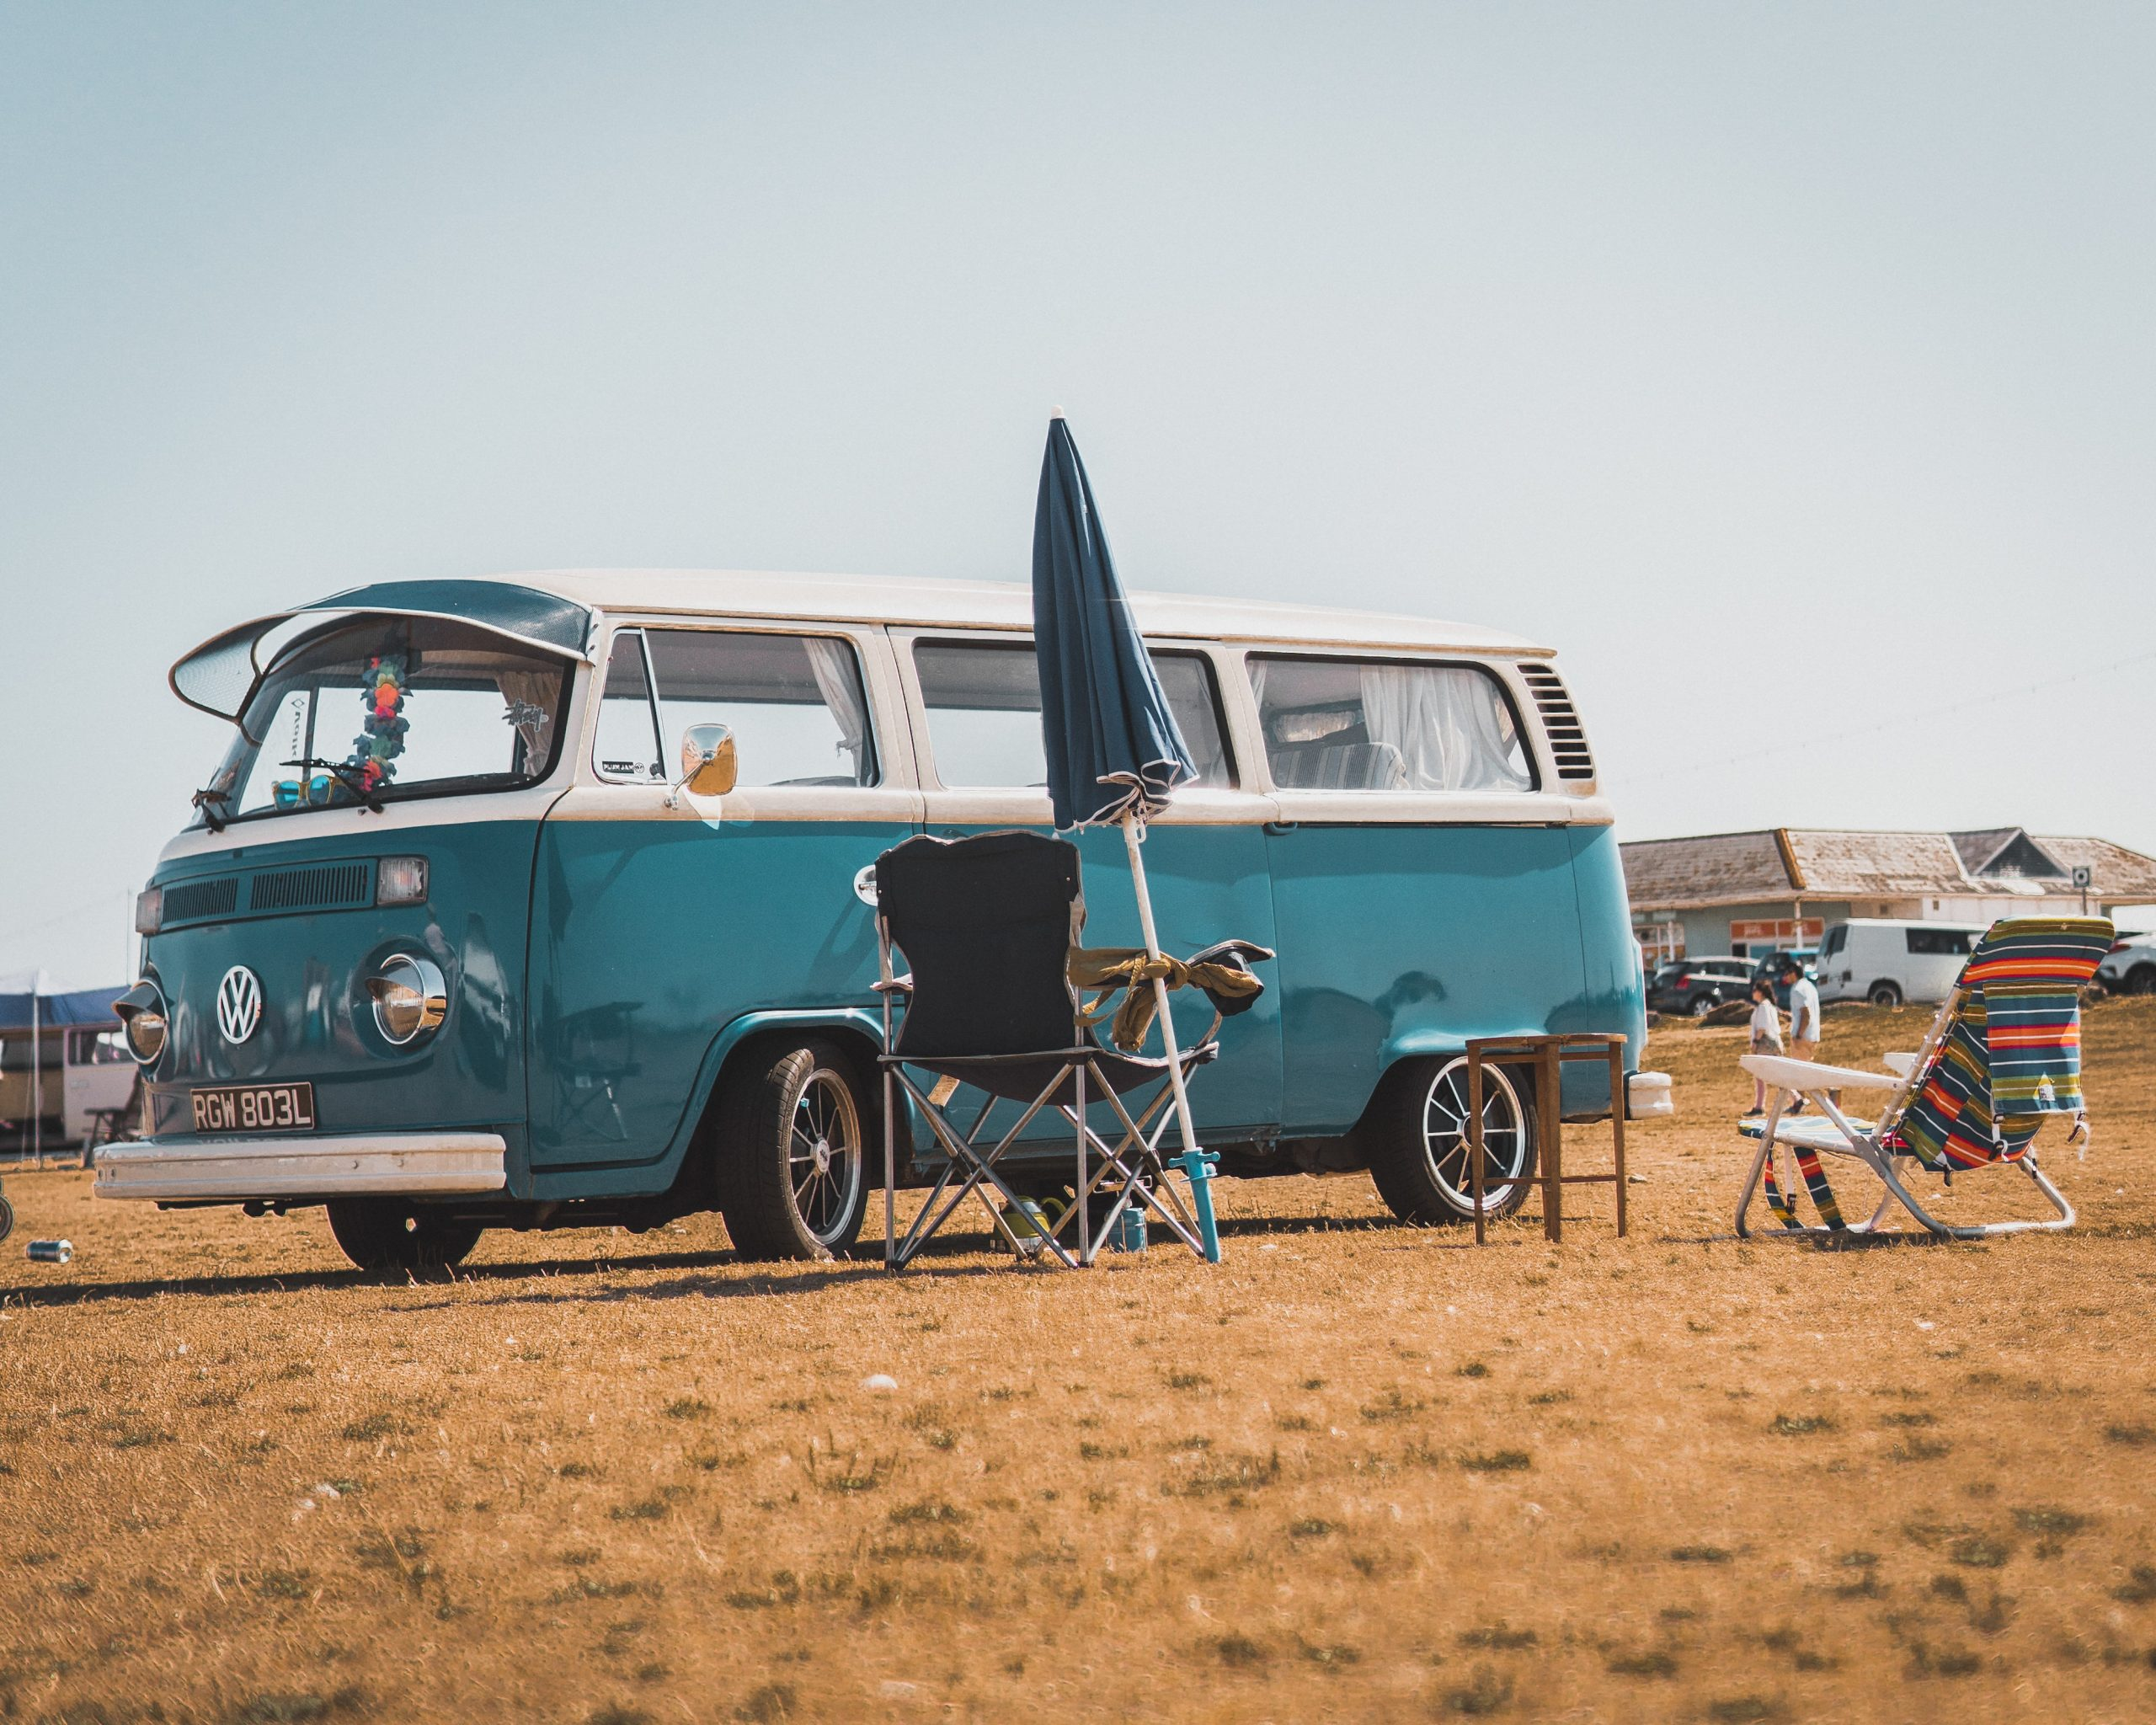 a blue VW camper is parked next to foldable chairs